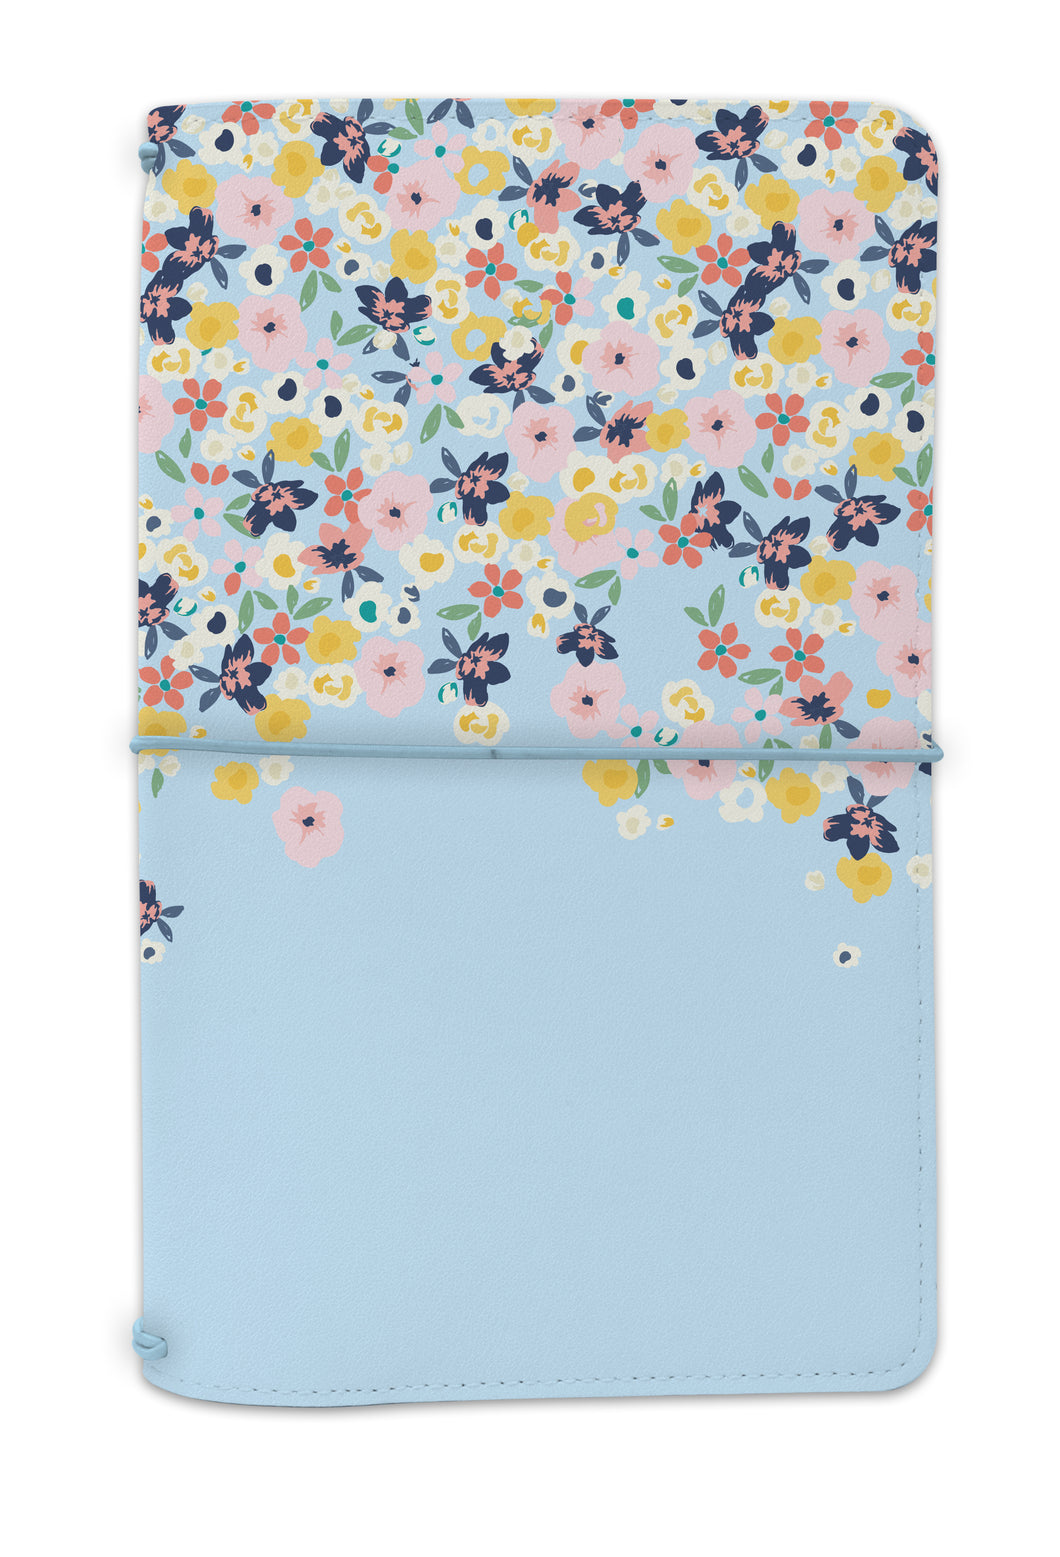 Ditsy Floral Traveler's Notebook